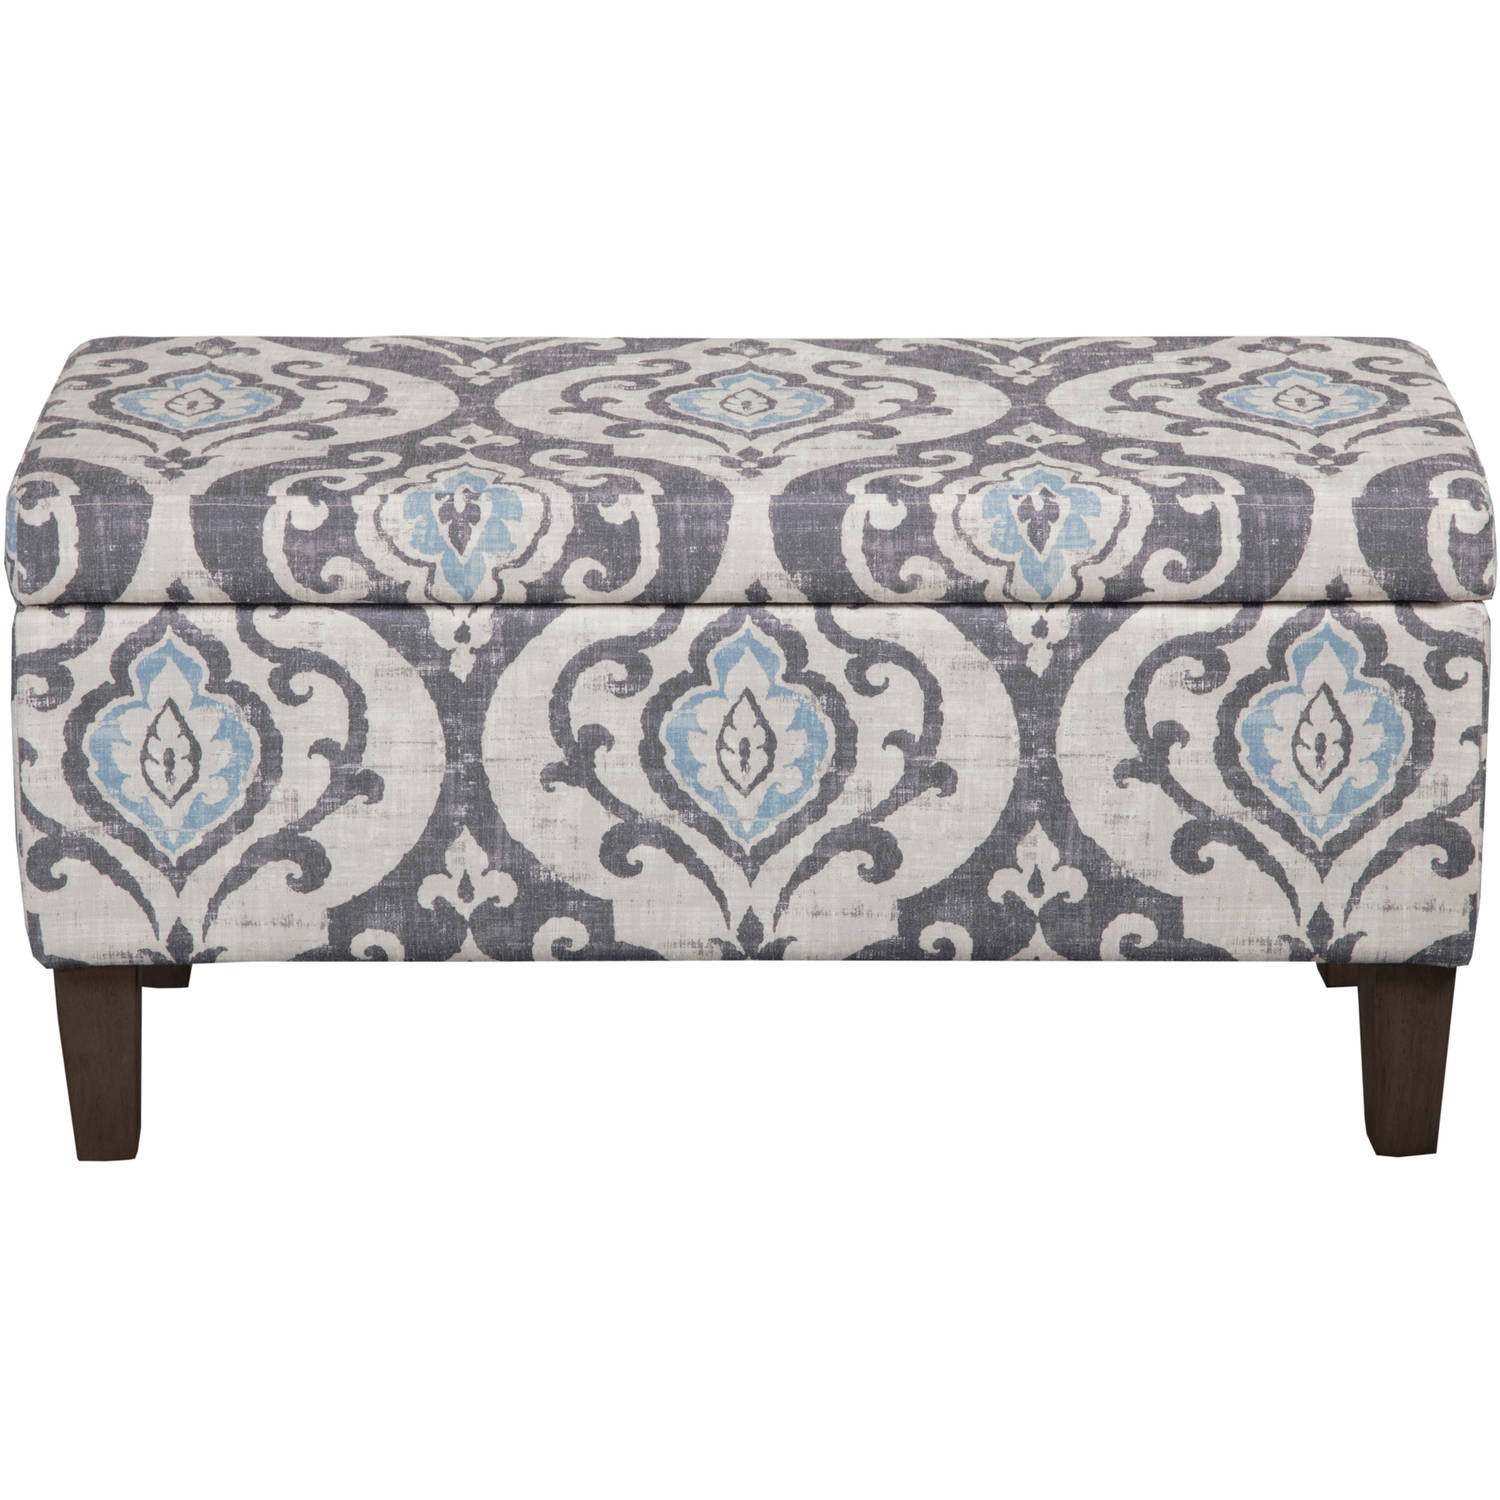 HomePop Drake Large Decorative Storage Bench, Multiple Colors